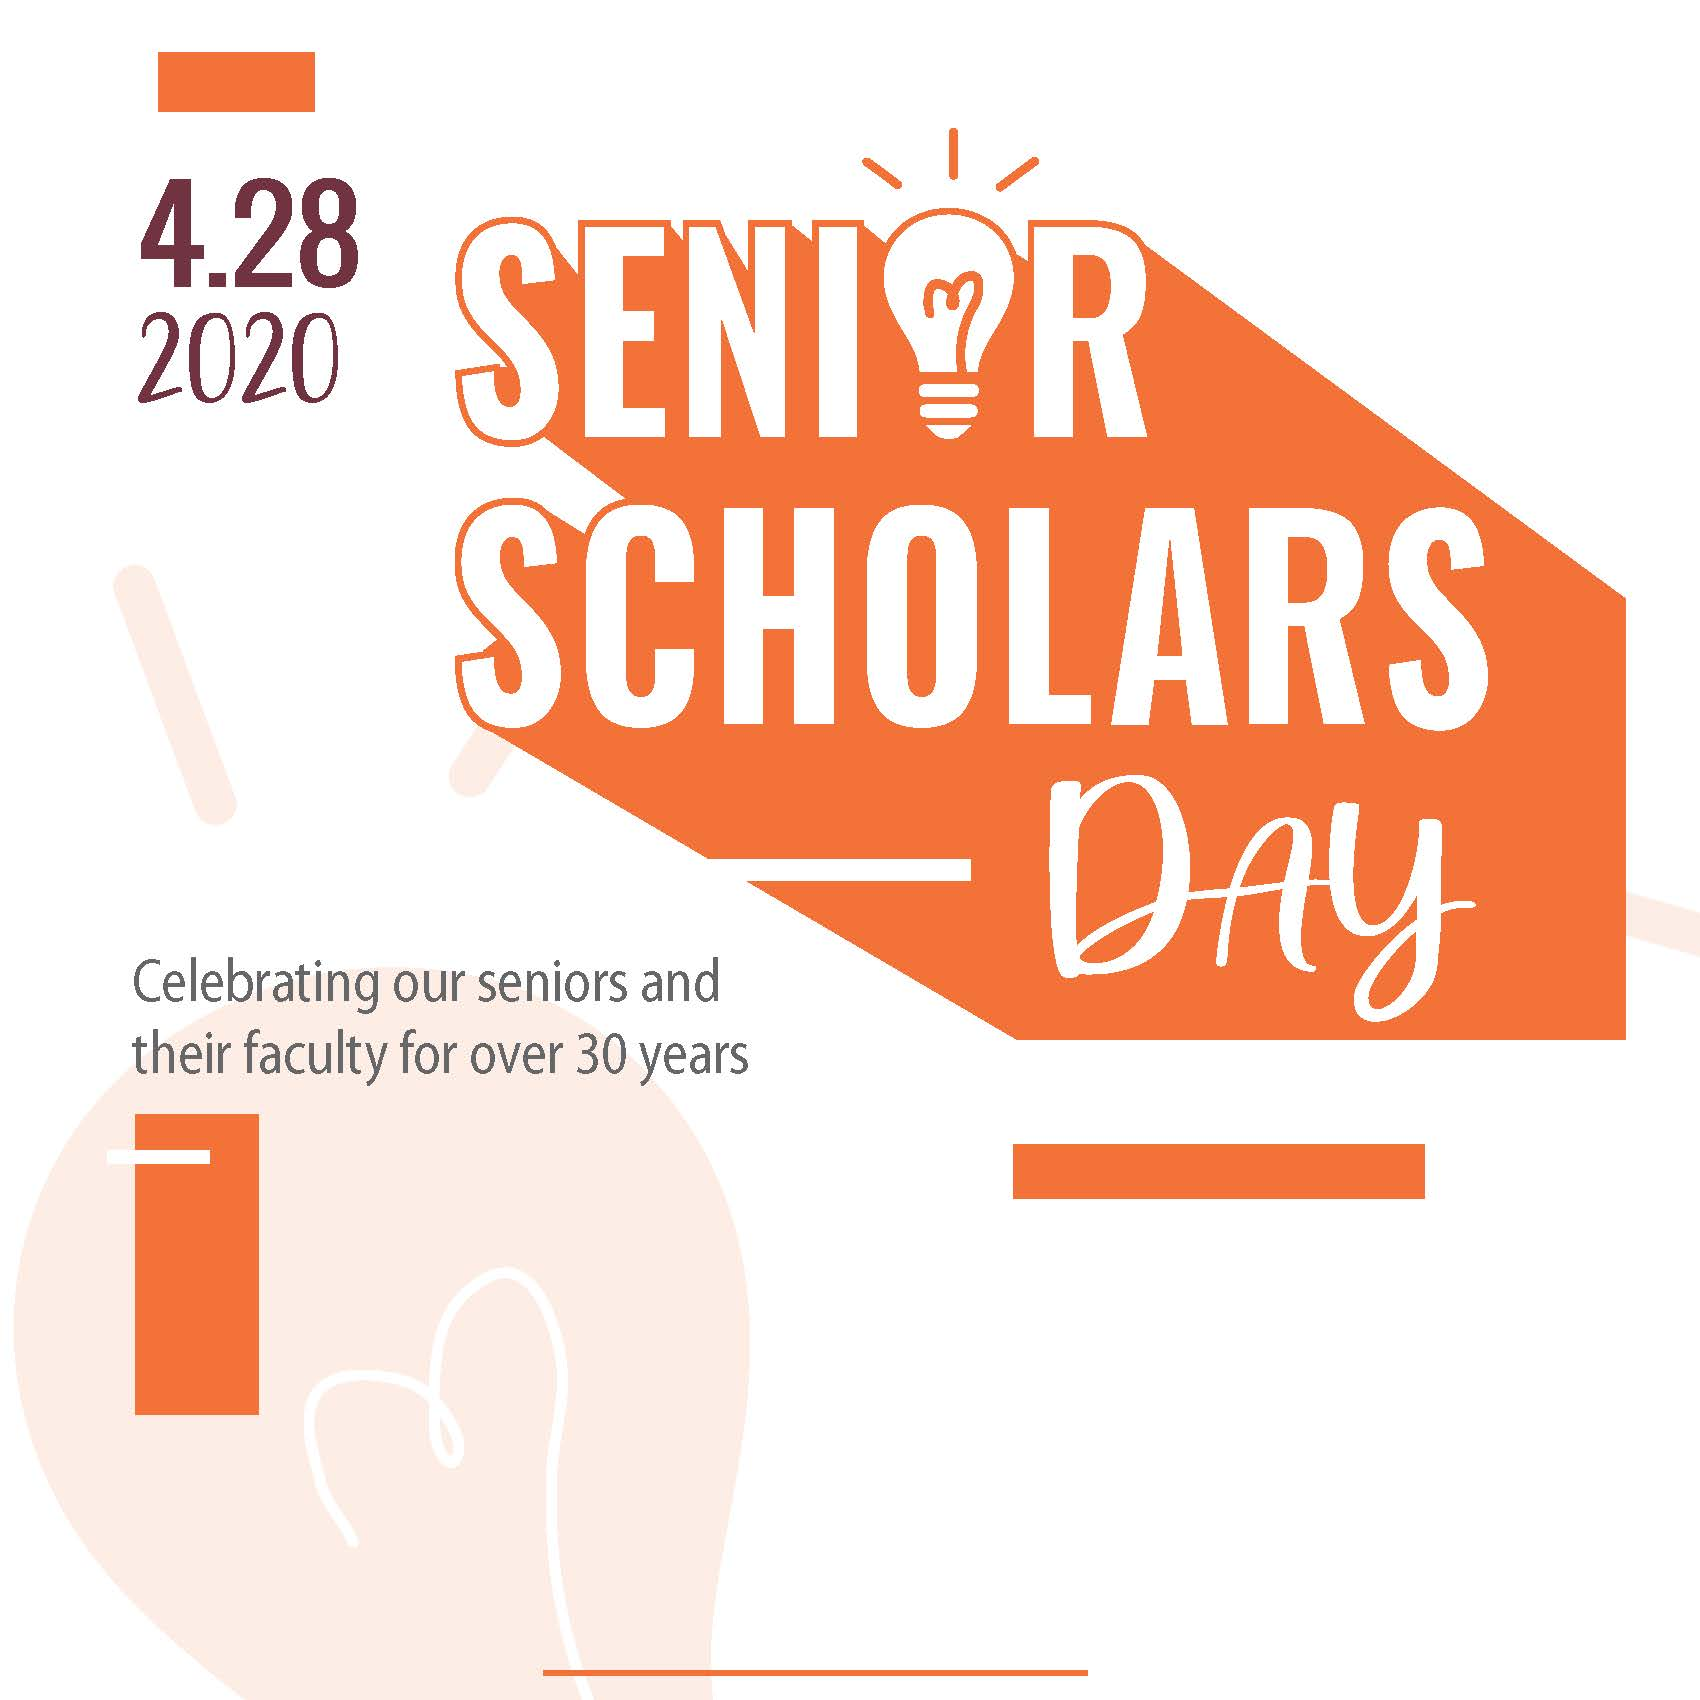 2020 Senior Scholars Day